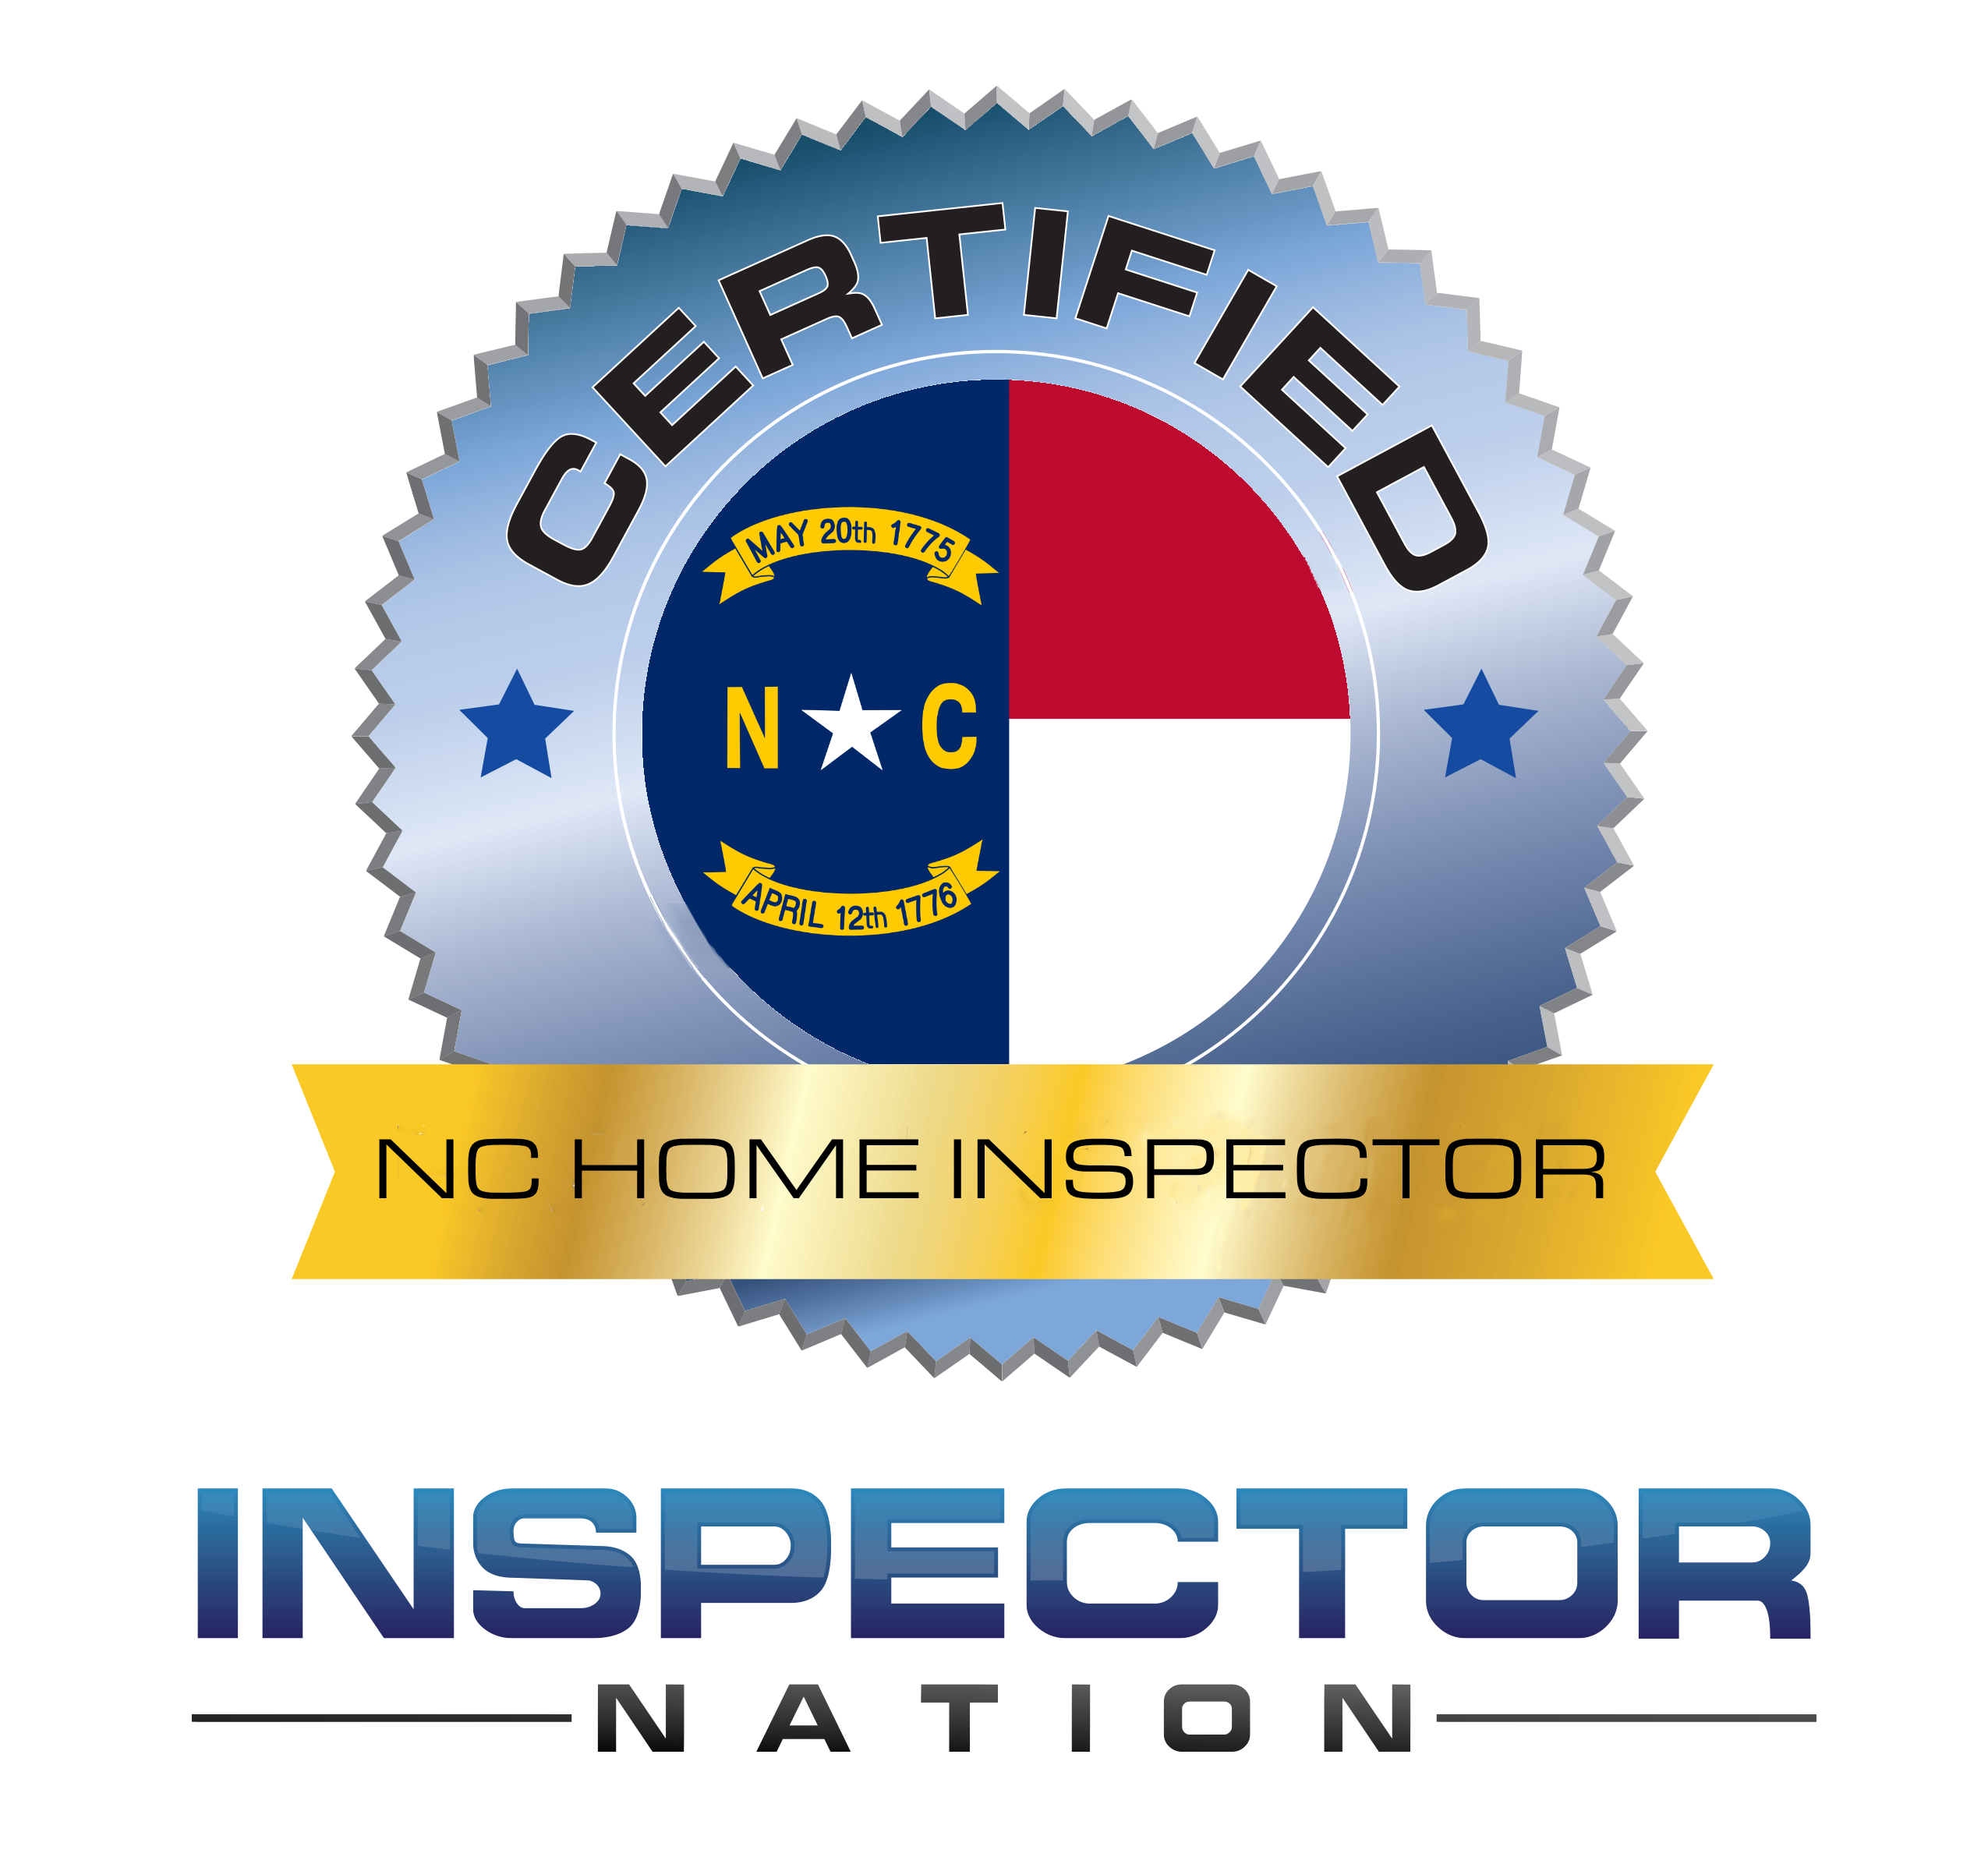 inspector nation certified home inspector badge north carolina nc